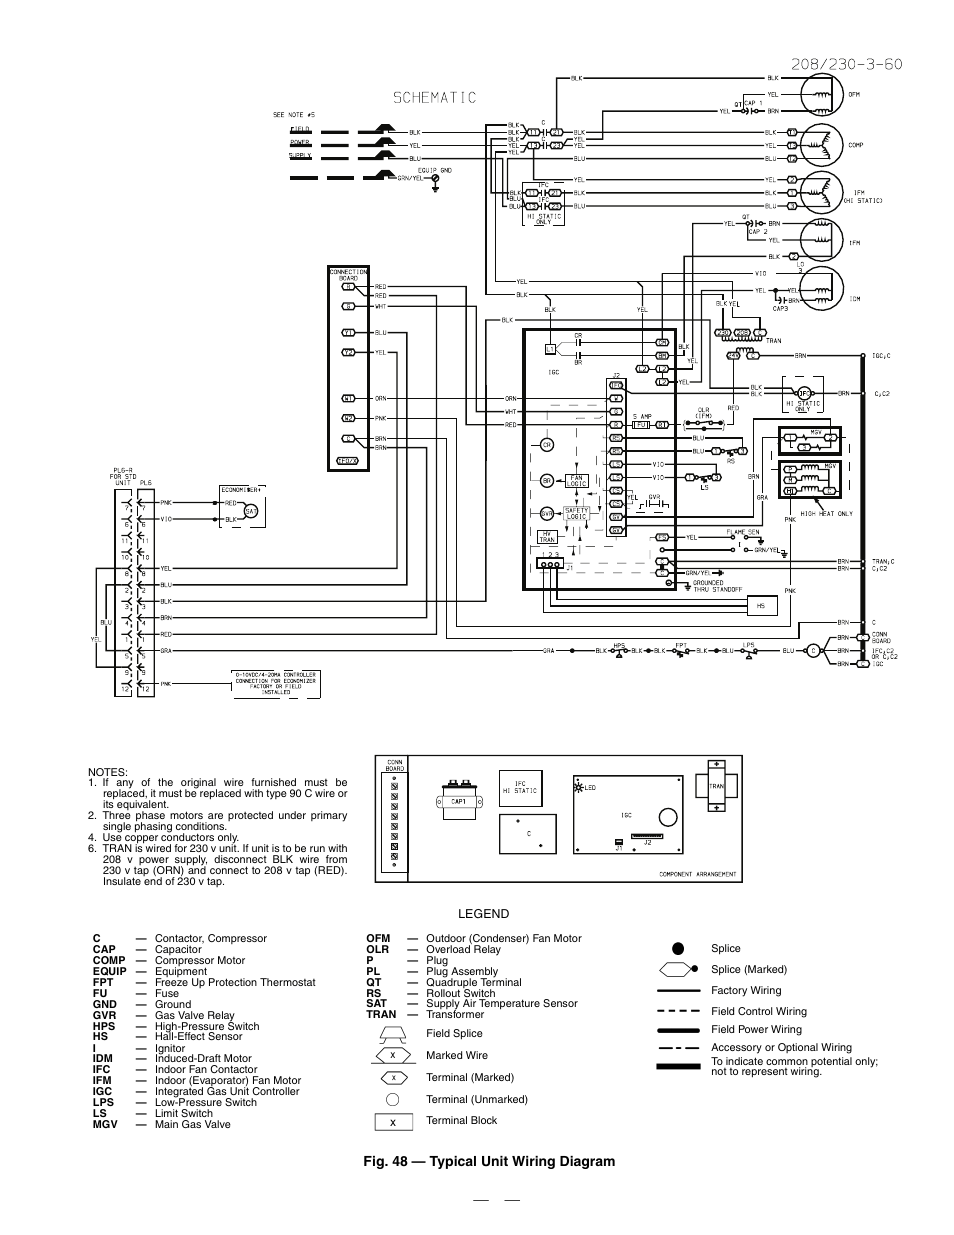 medium resolution of  field pressure switch wiring diagram 48 typical unit wiring diagram bryant durapac series 580f user manual page 57